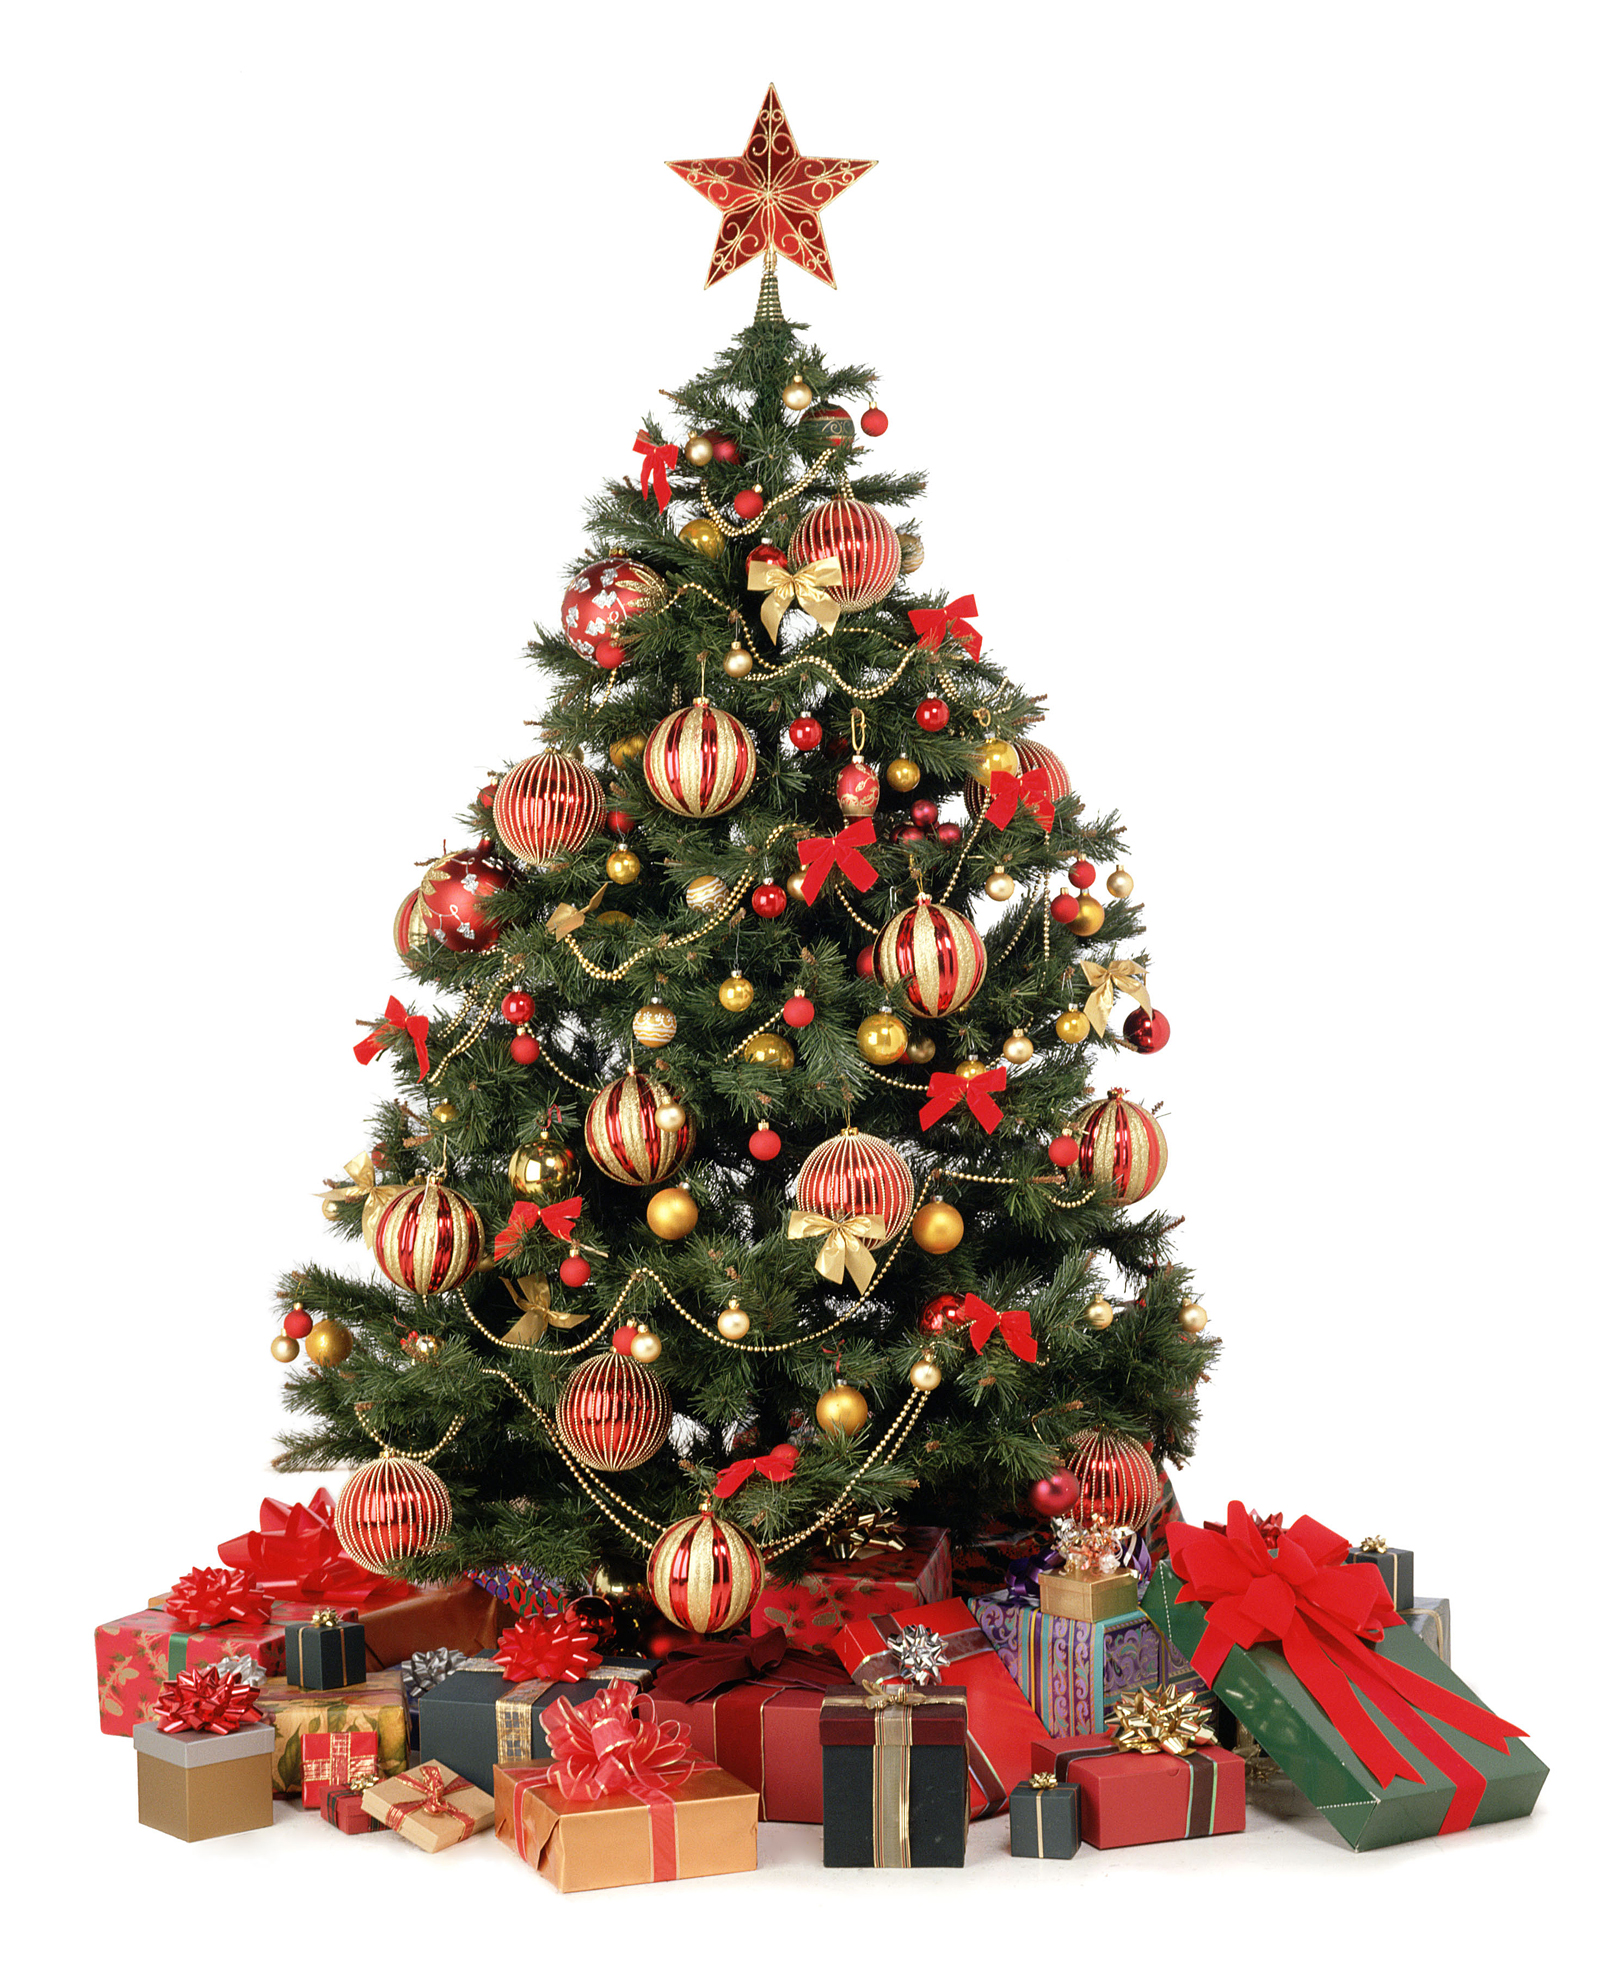 3. What a lovely Christmas tree